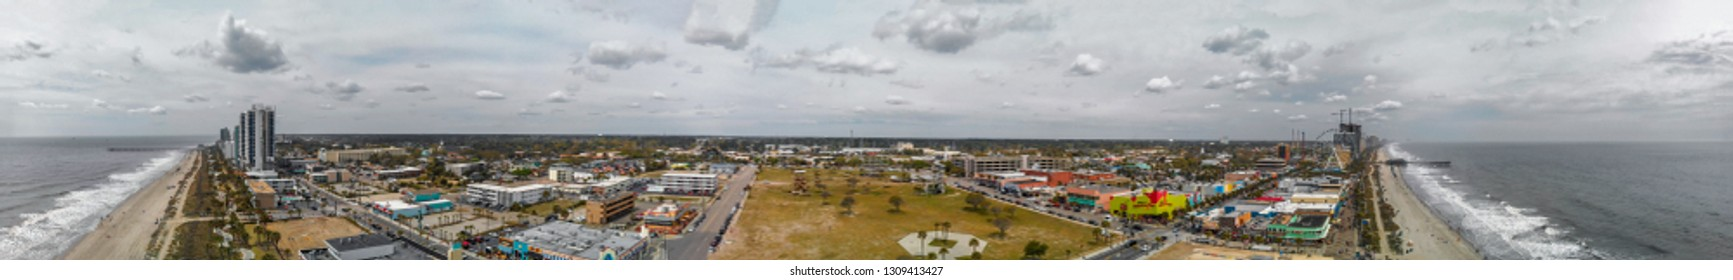 MYRTLE BEACH, SC - APRIL 2018: Panoramic aerial skyline and coastline on a cloudy afternoon. This is a famous tourist destination in summer.